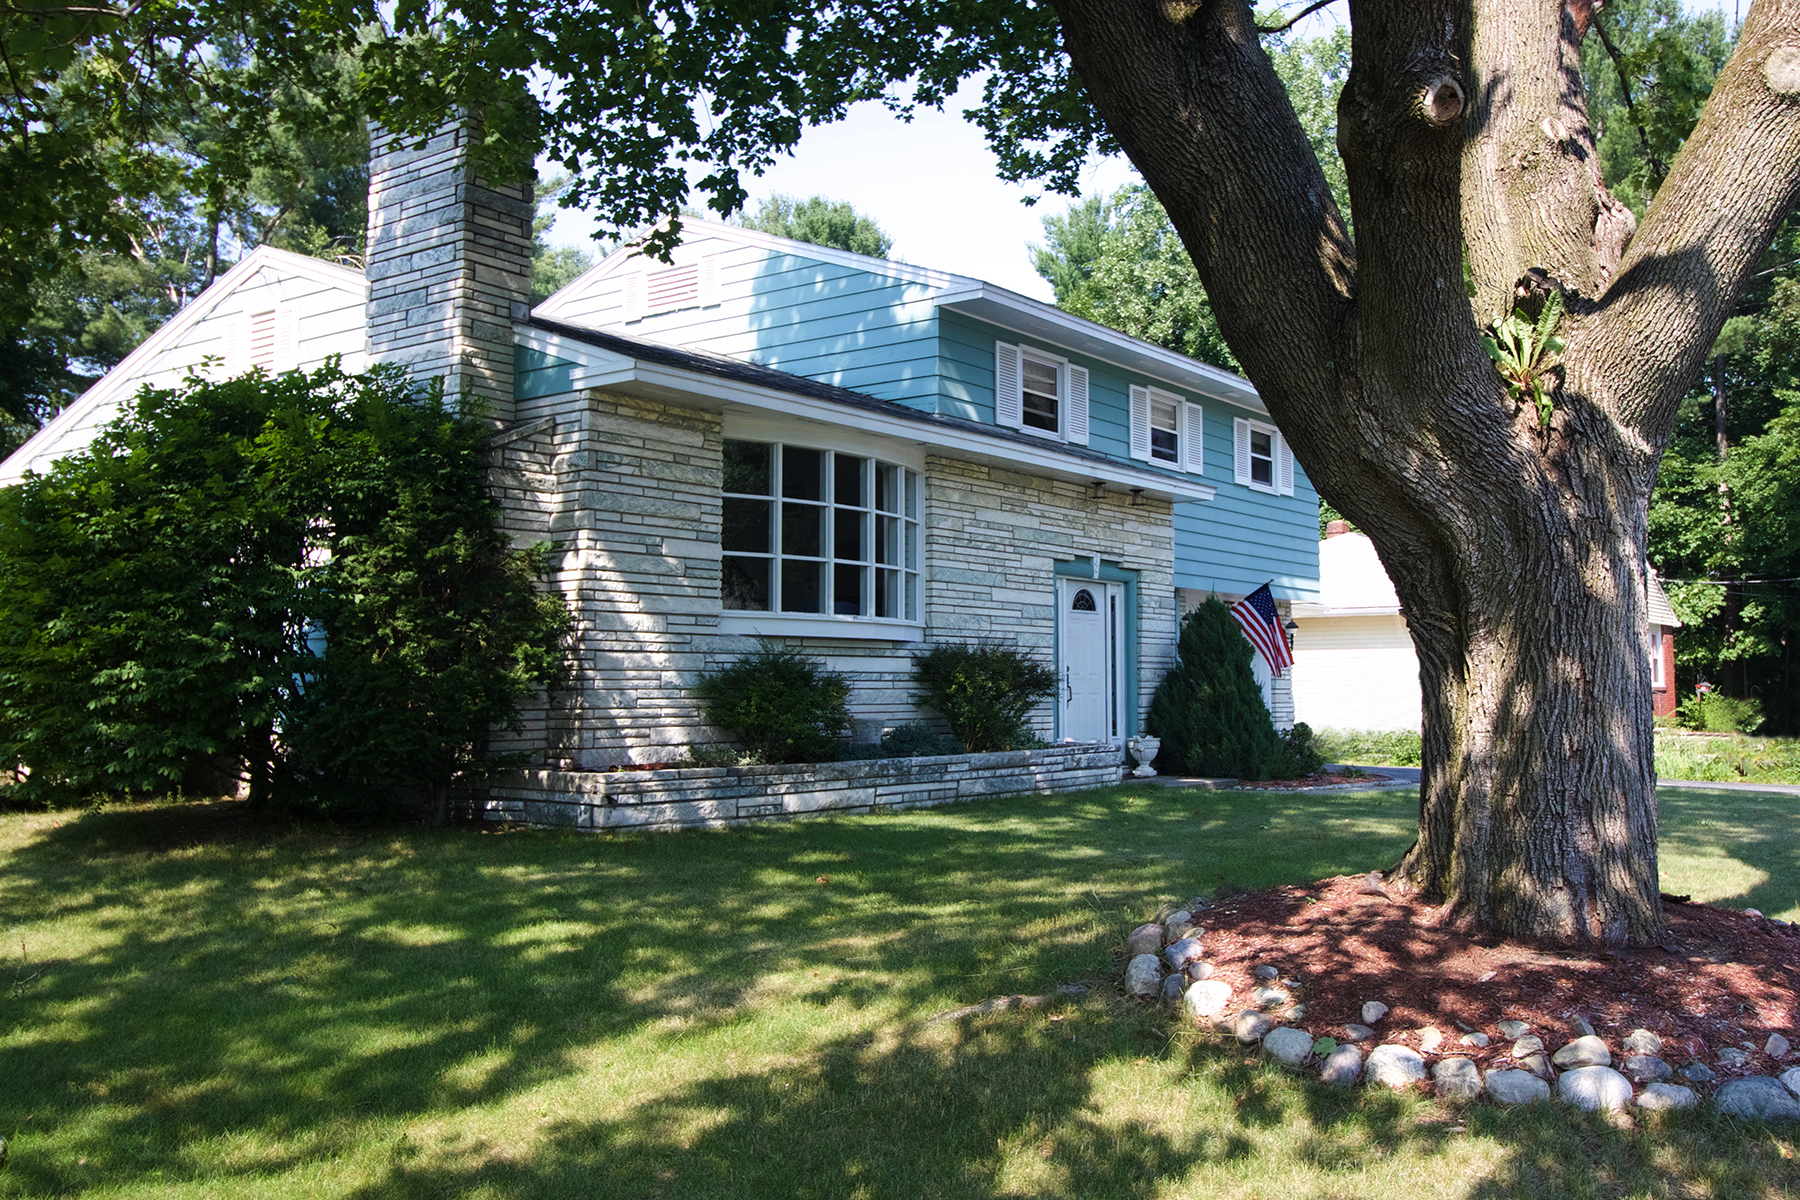 Maison unifamiliale pour l Vente à Gorgeous Split Level Ranch 9 Leland St South Glens Falls, New York 12803 États-Unis